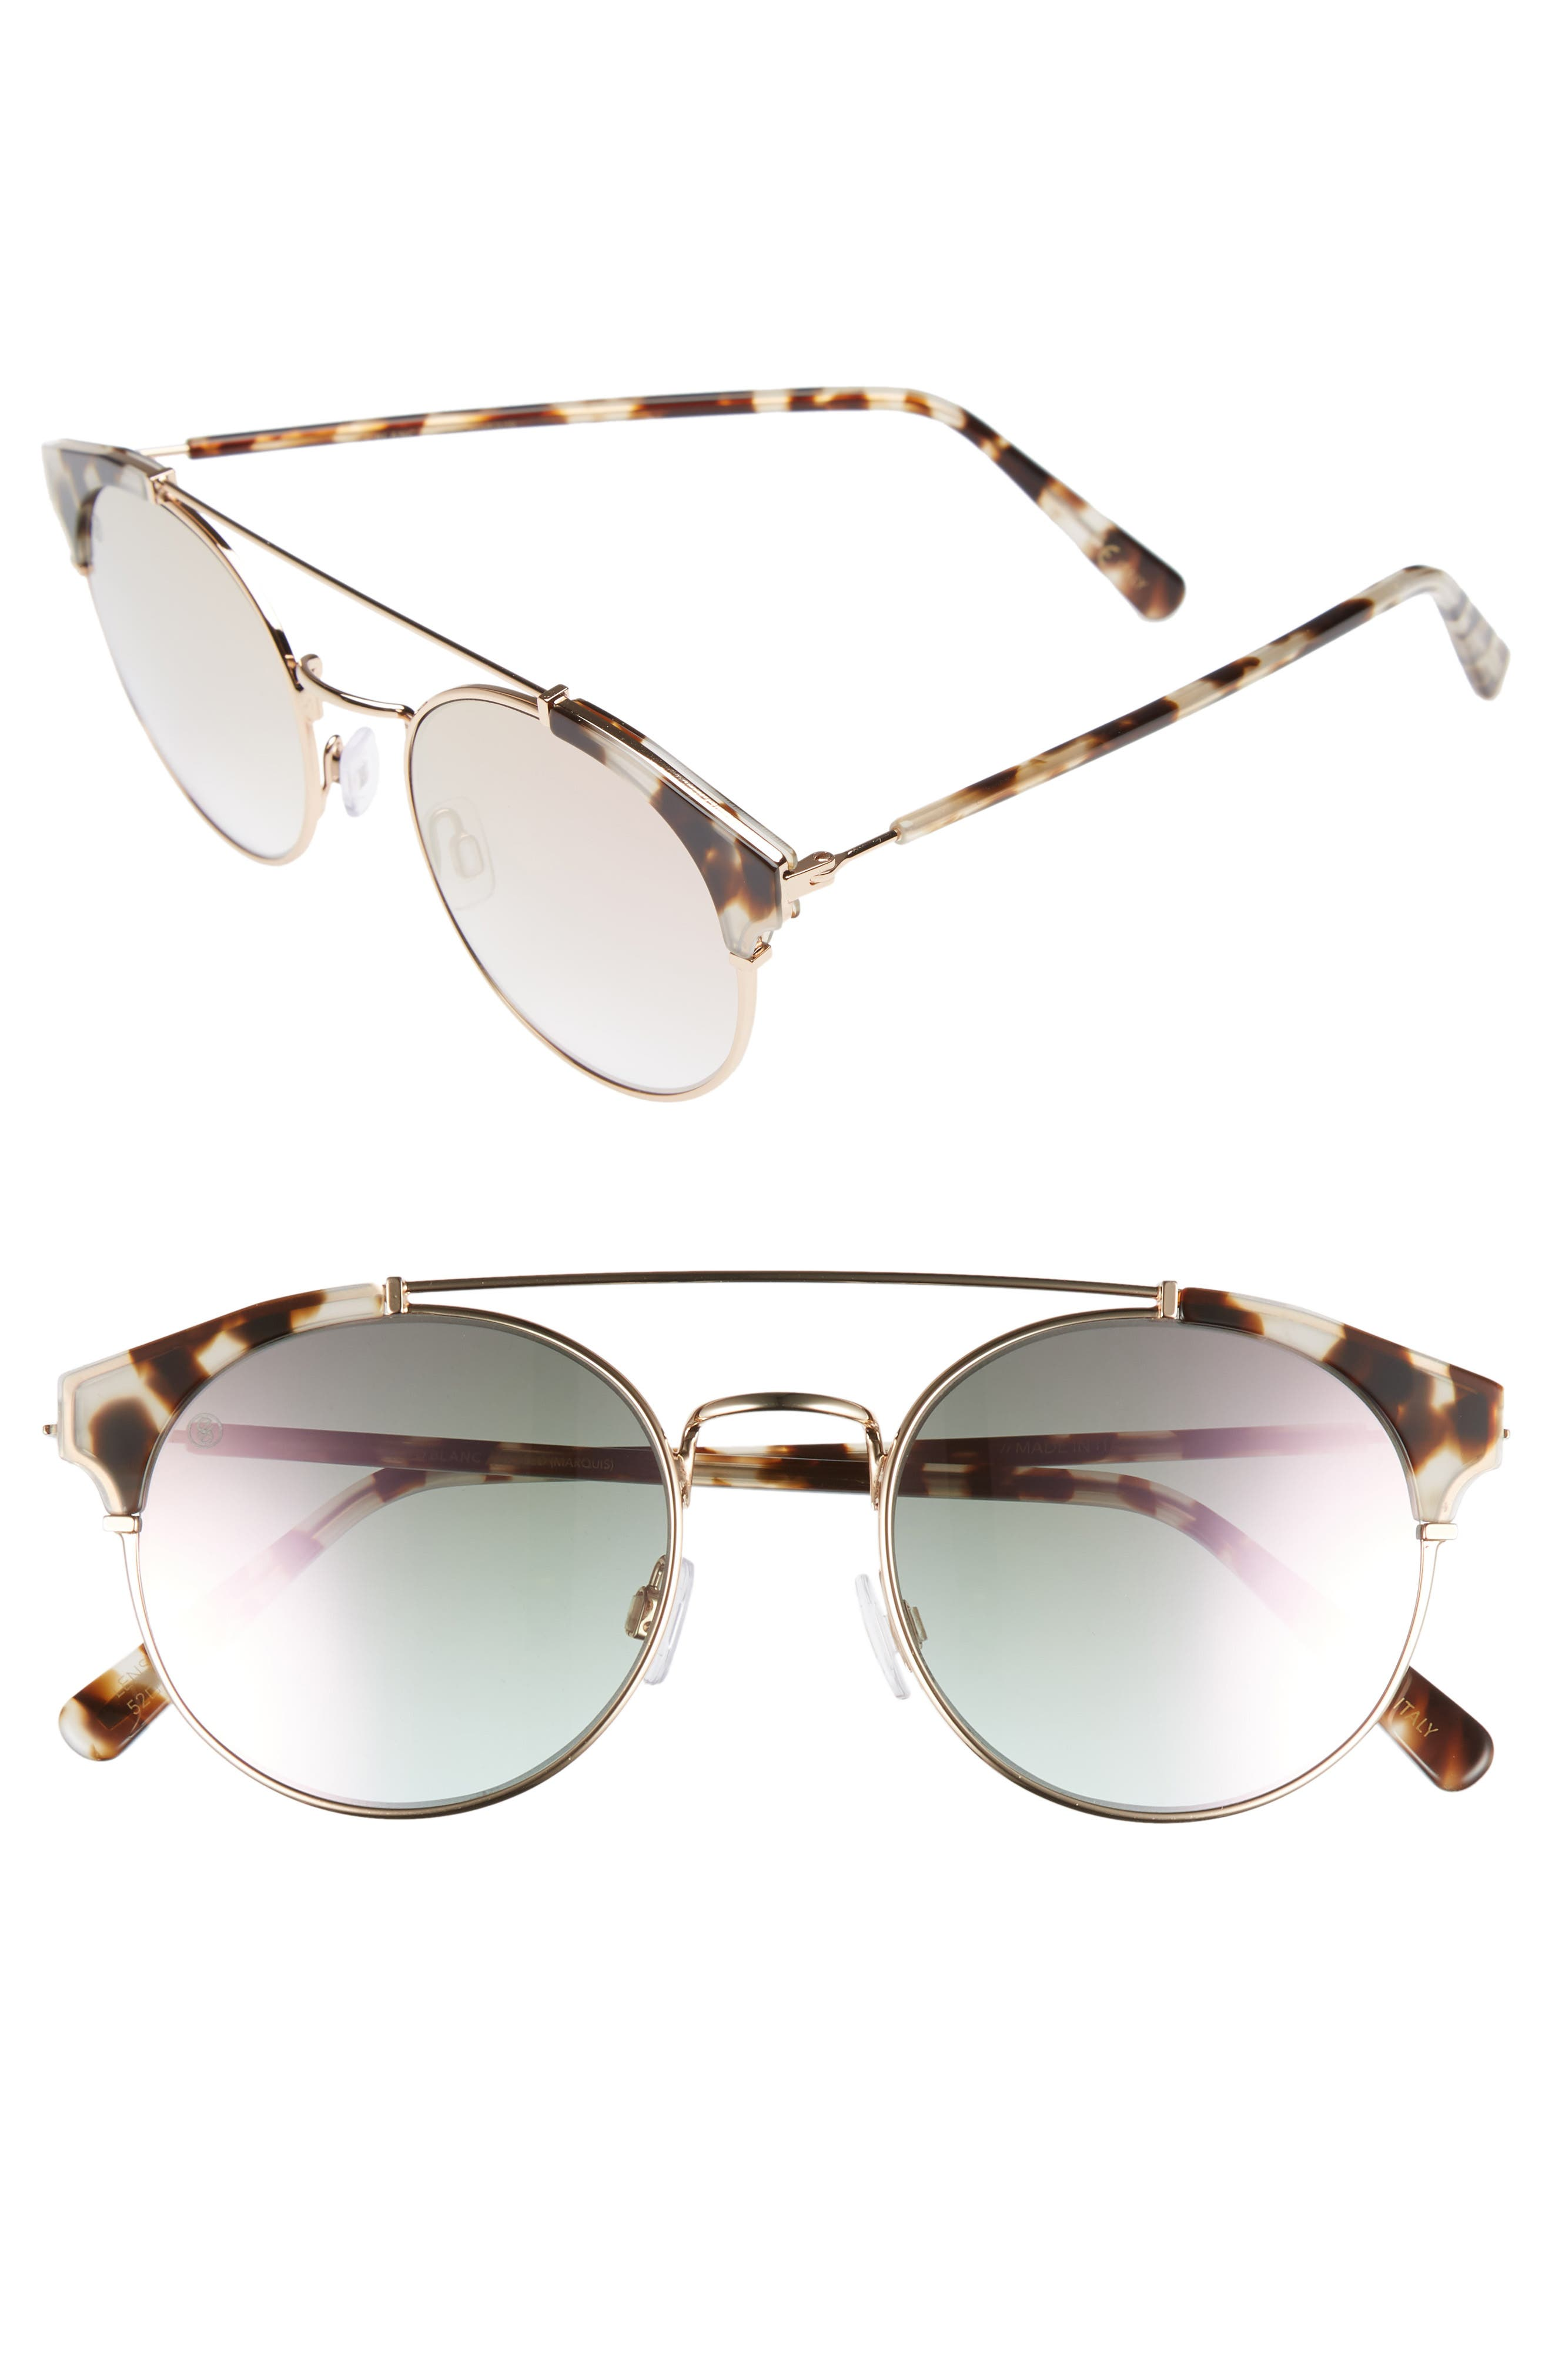 D'BLANC x Amuse Society Dosed Marquis 52mm Gradient Round Aviator Sunglasses,                             Main thumbnail 1, color,                             Snow Leopard/ Rose Flash